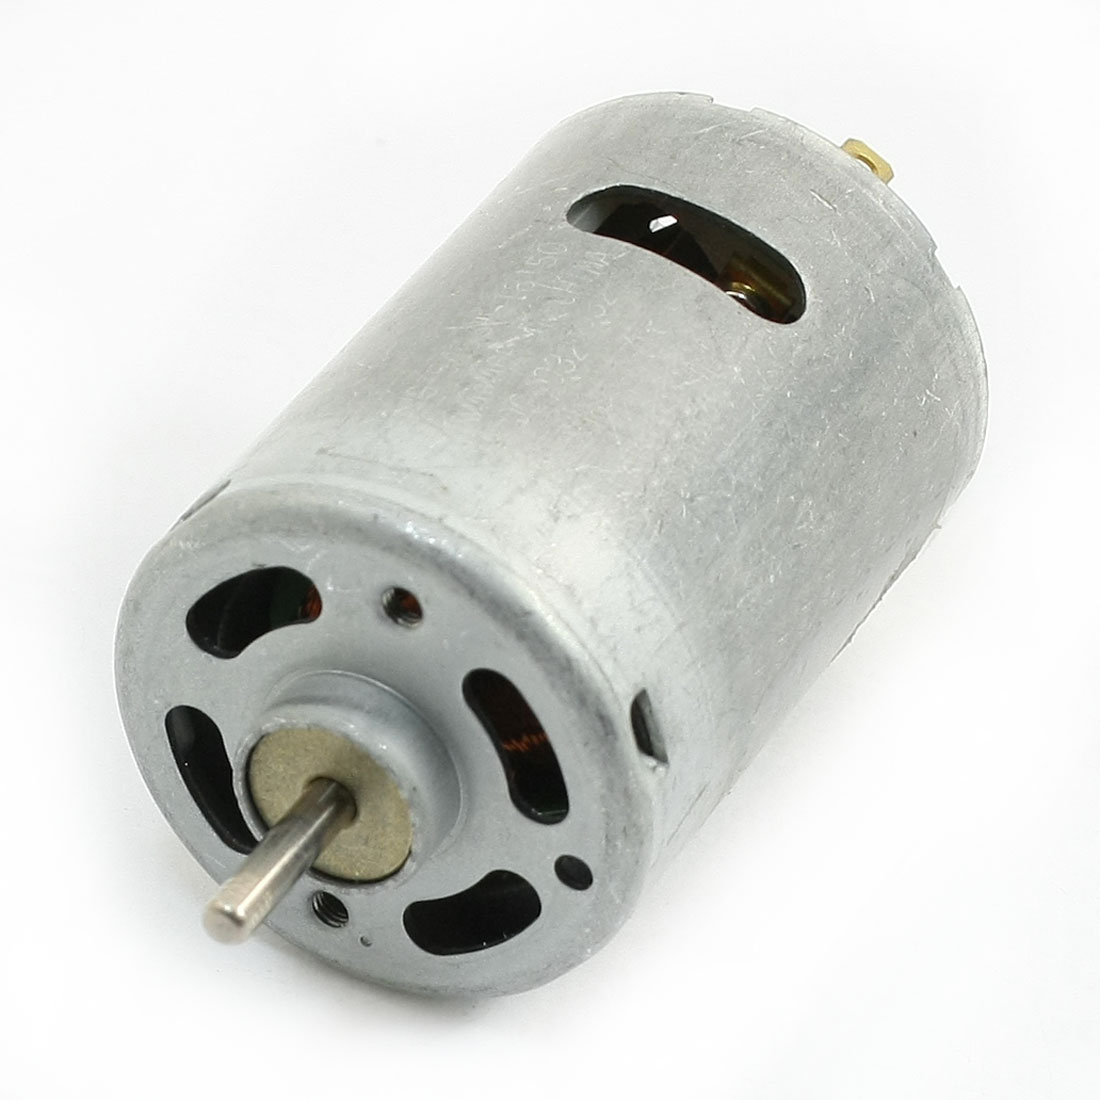 3mm-Shaft-36mm-Diameter-Magnetic-Electric-Motor-24000RPM-DC-12V